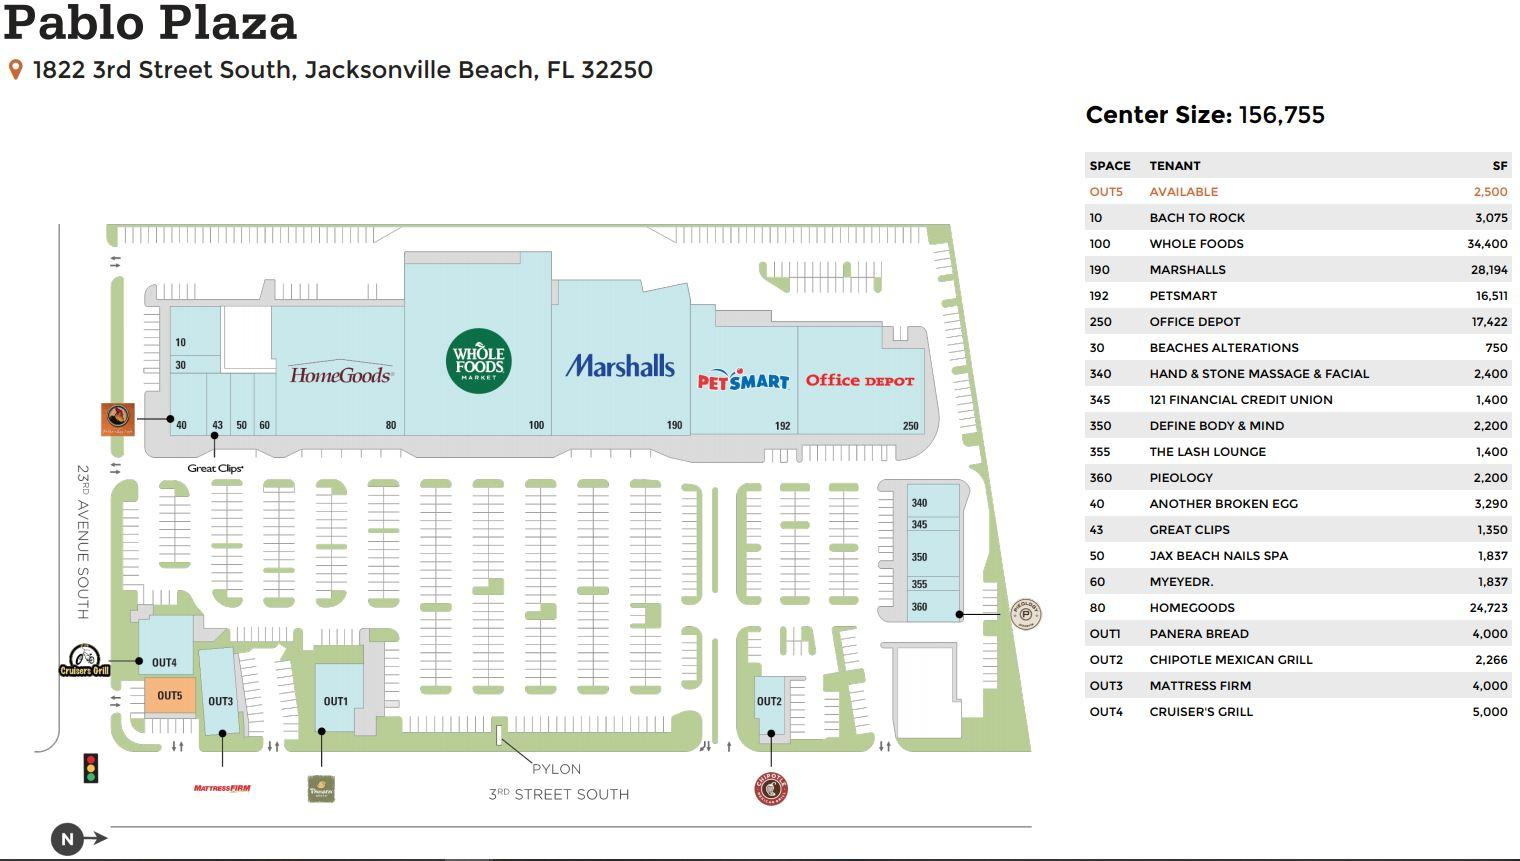 New Whole Foods Market Will Anchor Pablo Plaza In Jax Beach | WJCT NEWS